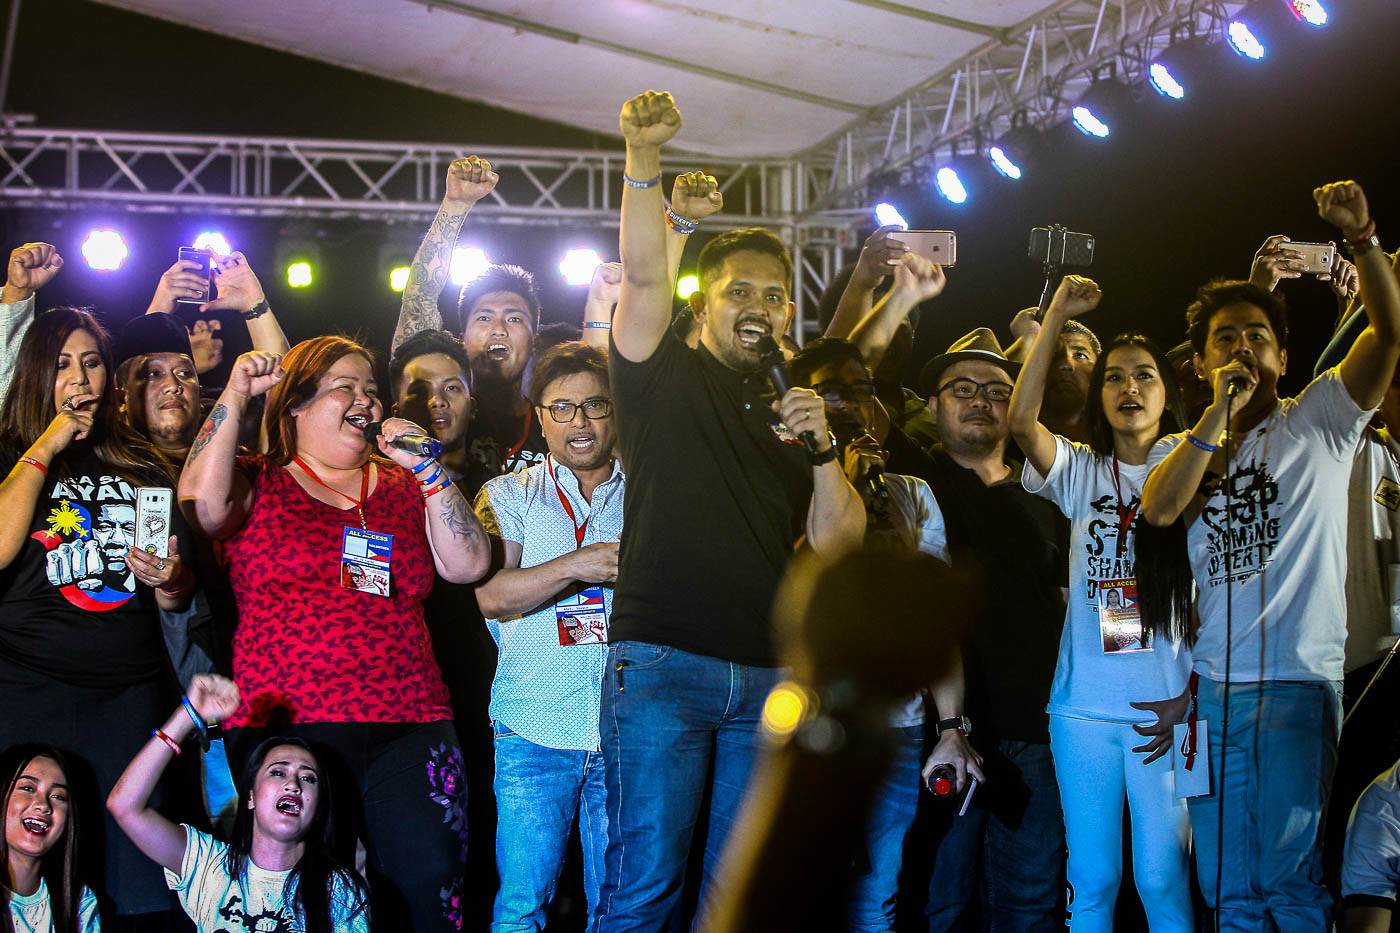 IMPEACH VP LENI TEAM. The Palit Bise rally was organized by several Duterte supporters, including singer and Philippine Amusement and Gaming Corporation official Jimmy Bondoc (R) and Arnell Ignacio (3rd L), blogger Mocha Uson (2nd R), actress Vivian Velez (L), and lawyers Bruce Rivera (C, hidden) and Greco Belgica (C). Photo by Ben Nabong/Rappler